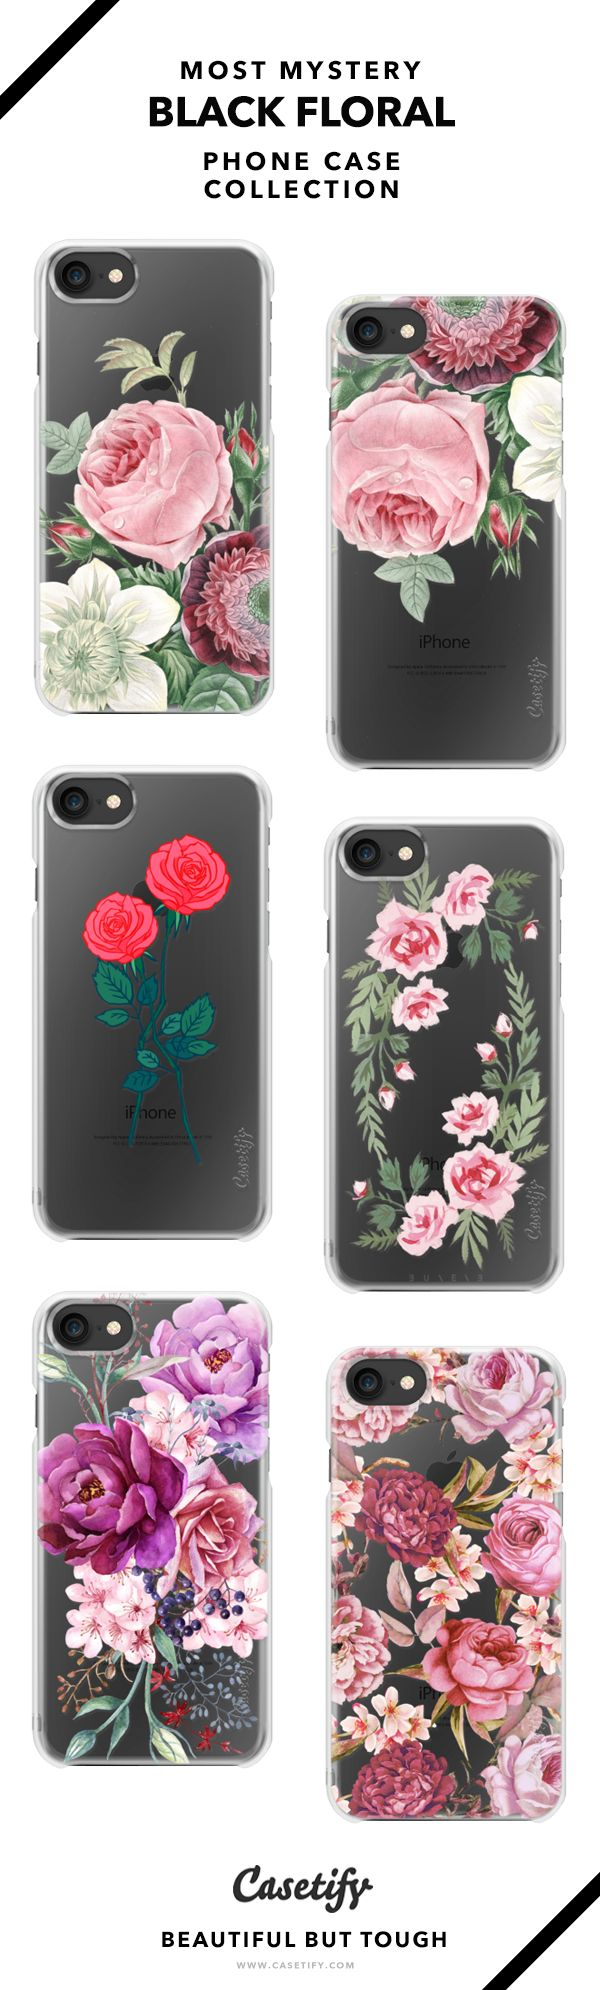 Don't Let Anyone Dim Your Light | Dark Floral Phone Case Collection - iPhone 6/6s/7/7+ AND MORE! Shop them here ☝️☝️☝️ BEAUTIFUL BUT TOUGH ✨ - flower, vintage, black, love, girl, bouquet, floral